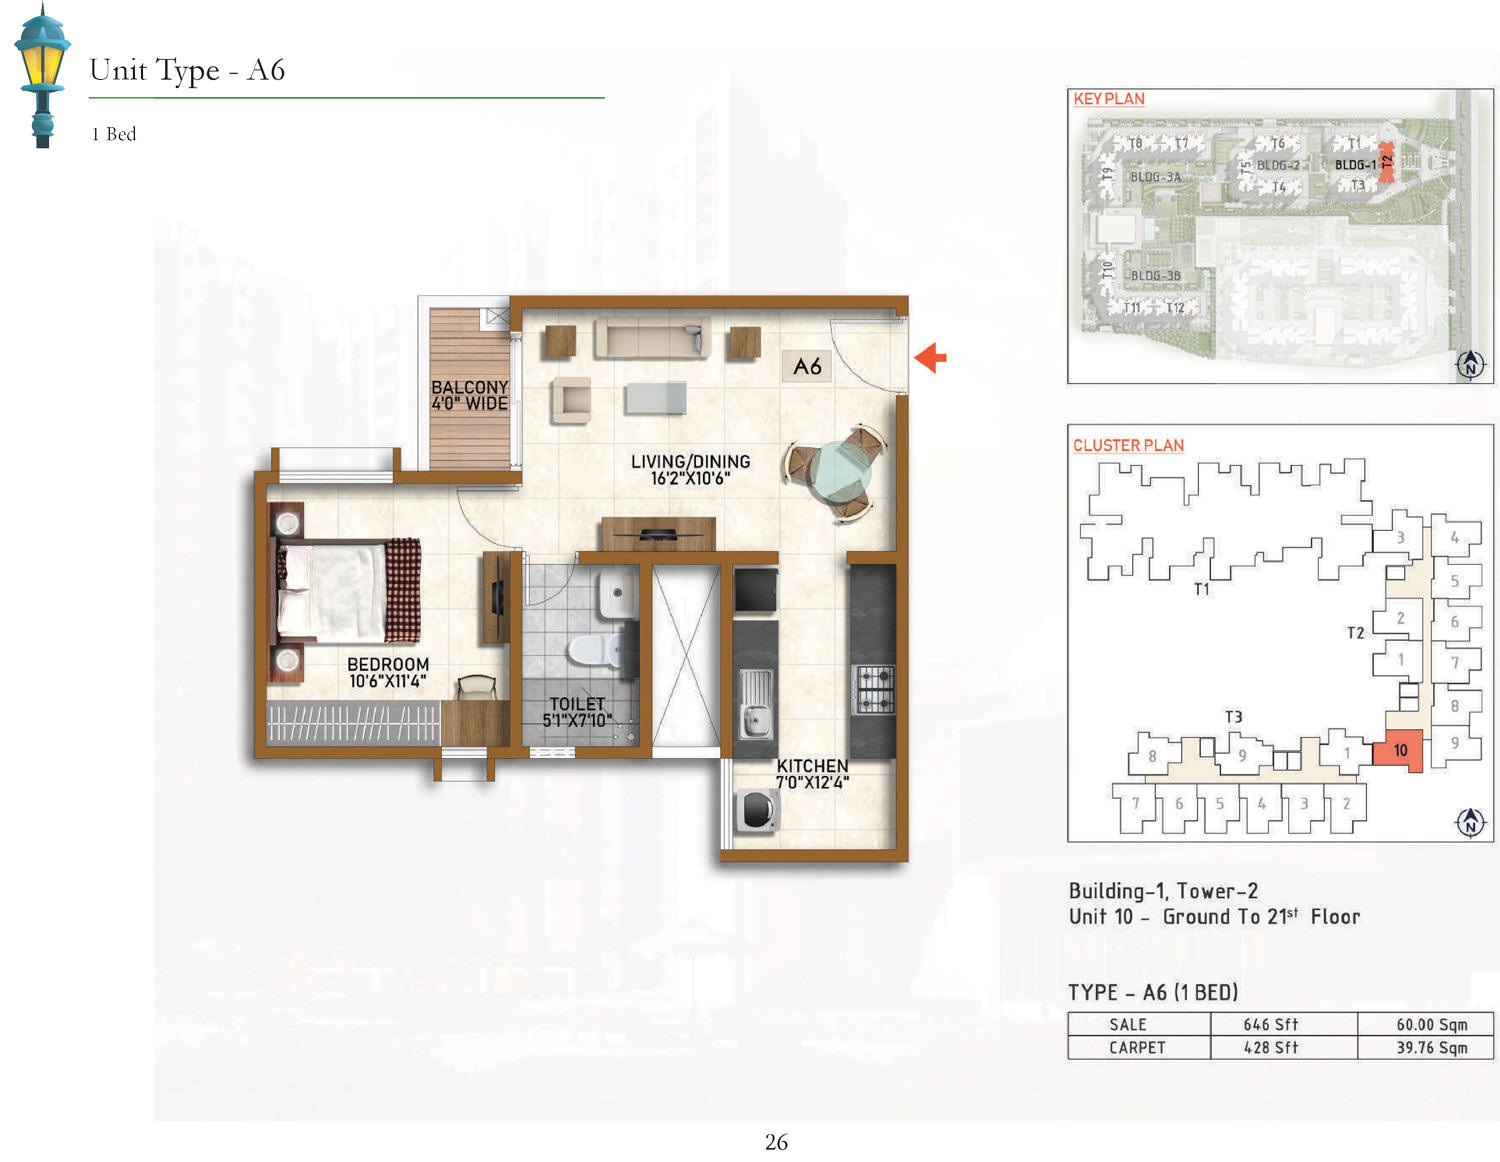 Type A6 - 646 Sq Ft